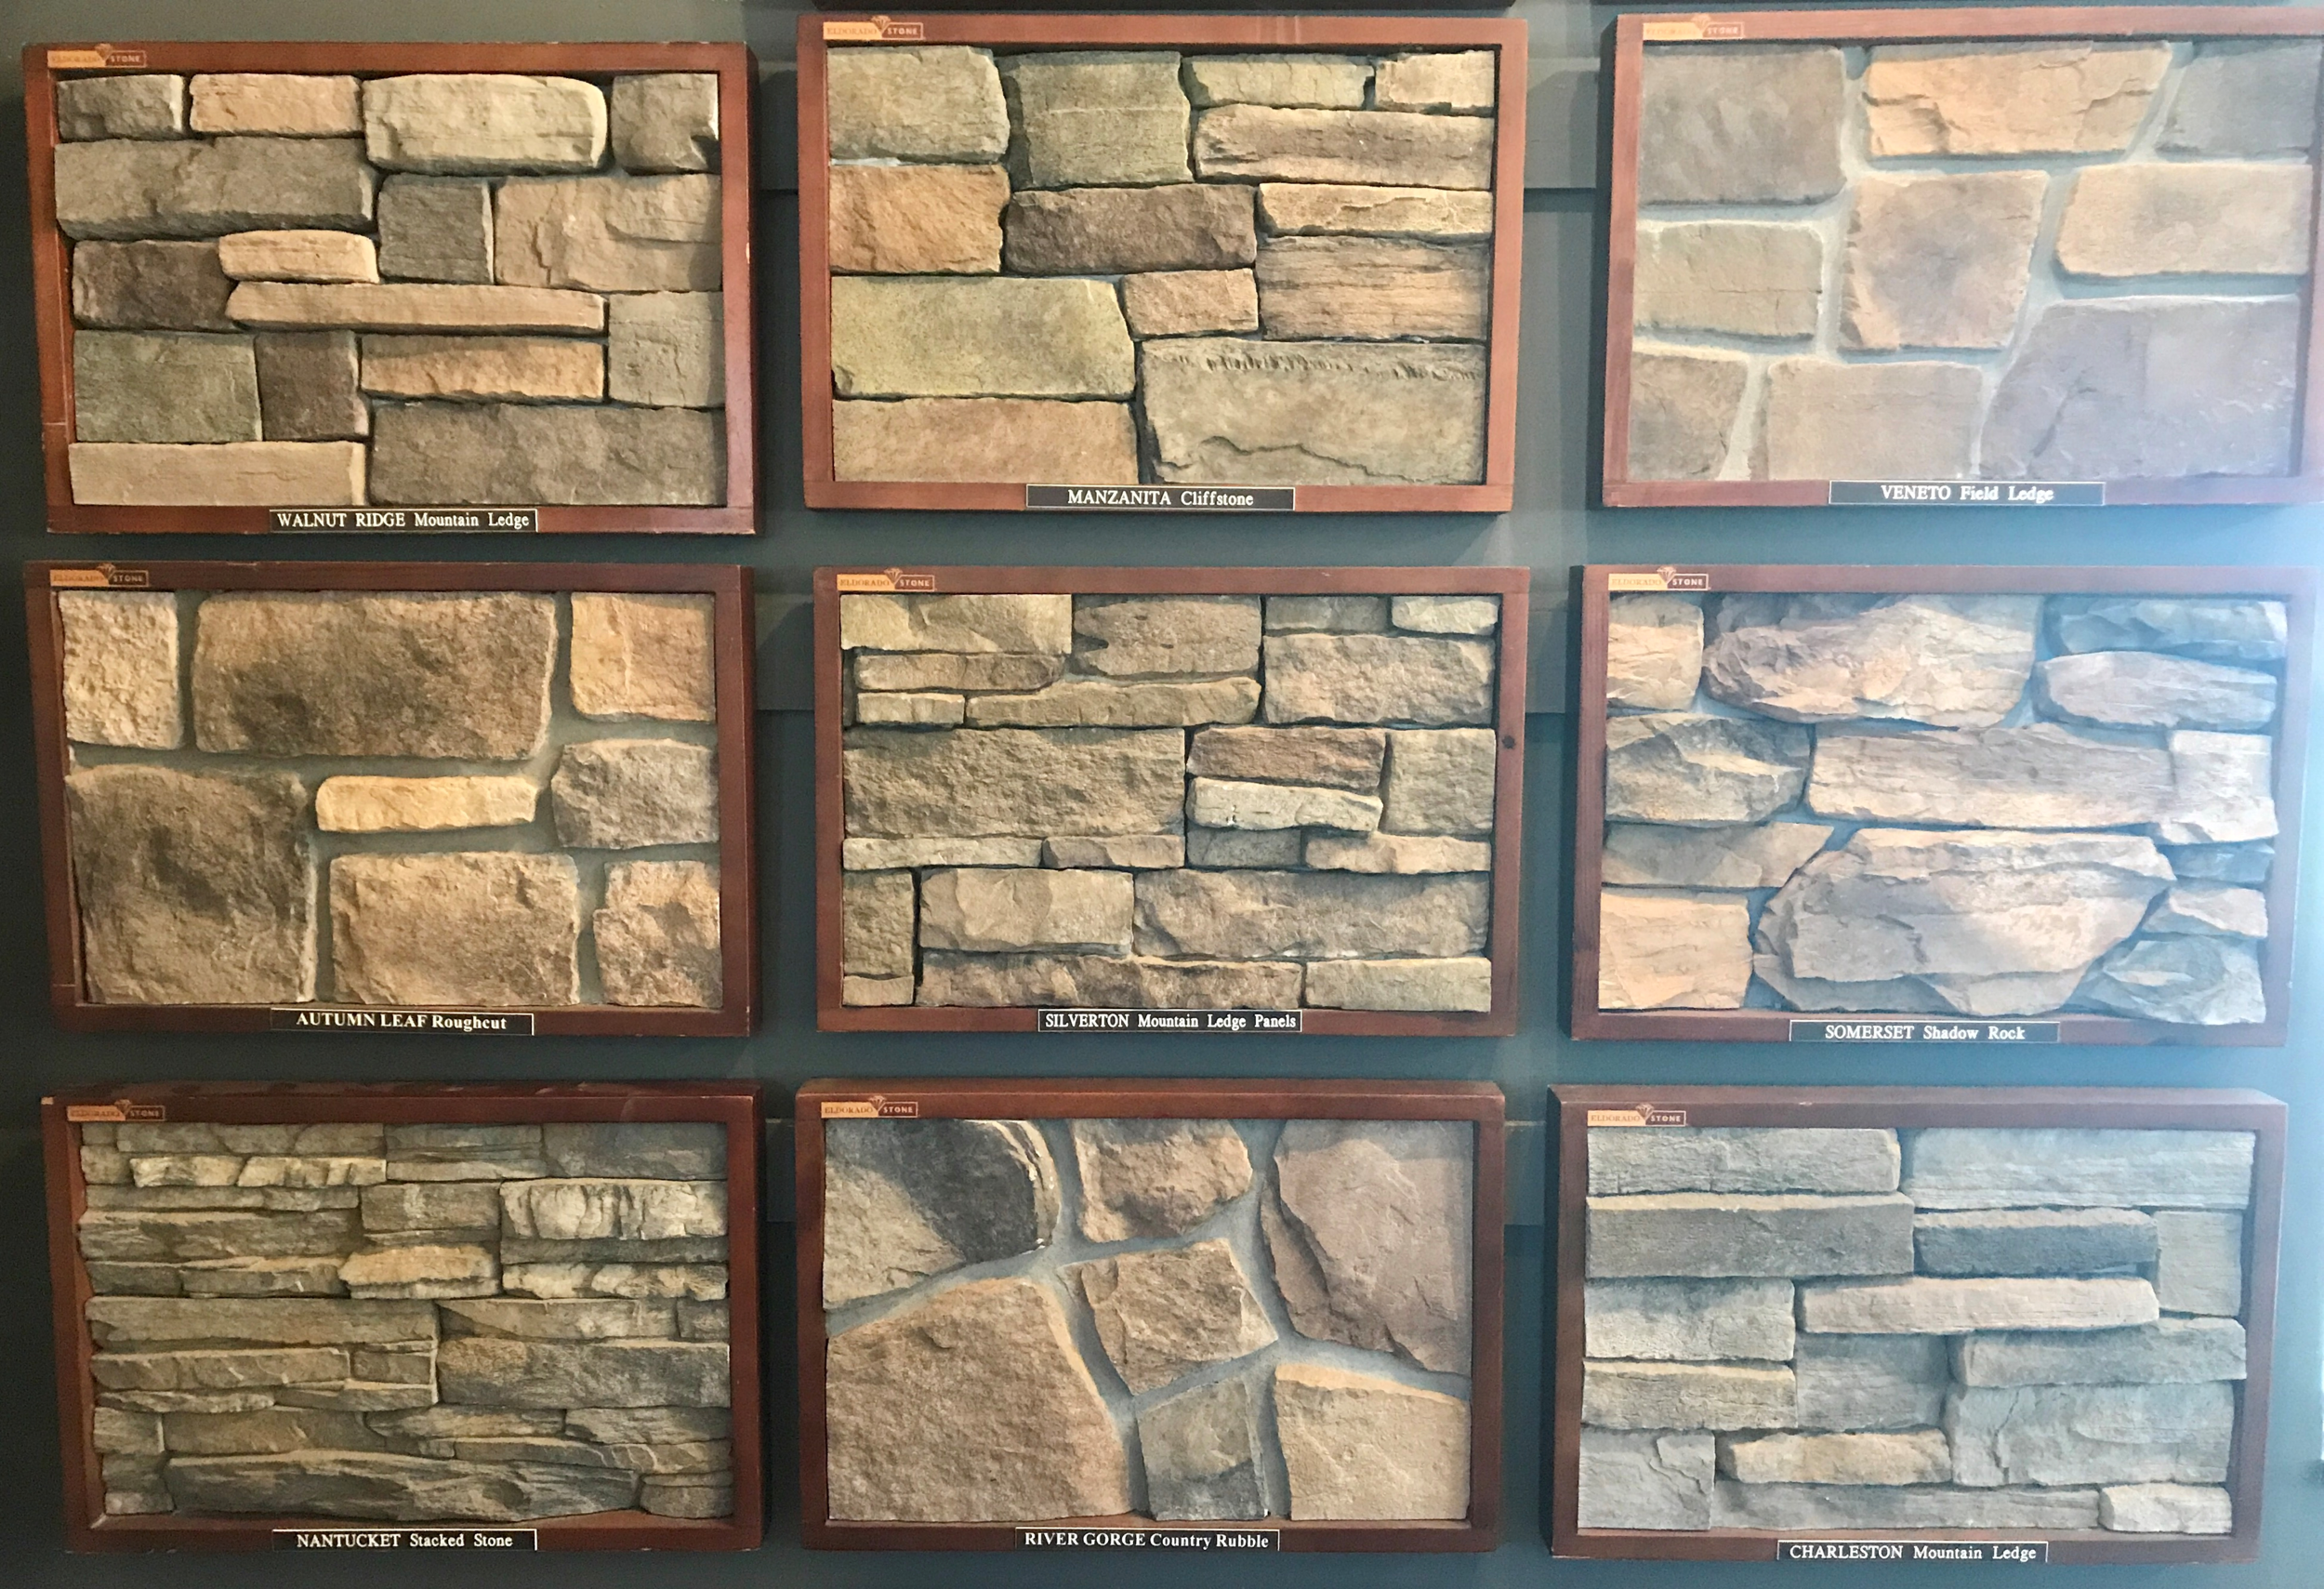 El DORADO  - This company produces top quality synthetic stones. It is very popular among both homeowners and contractors due to the colors being casted within the stone and also the large selection they provide with both styles and colors.